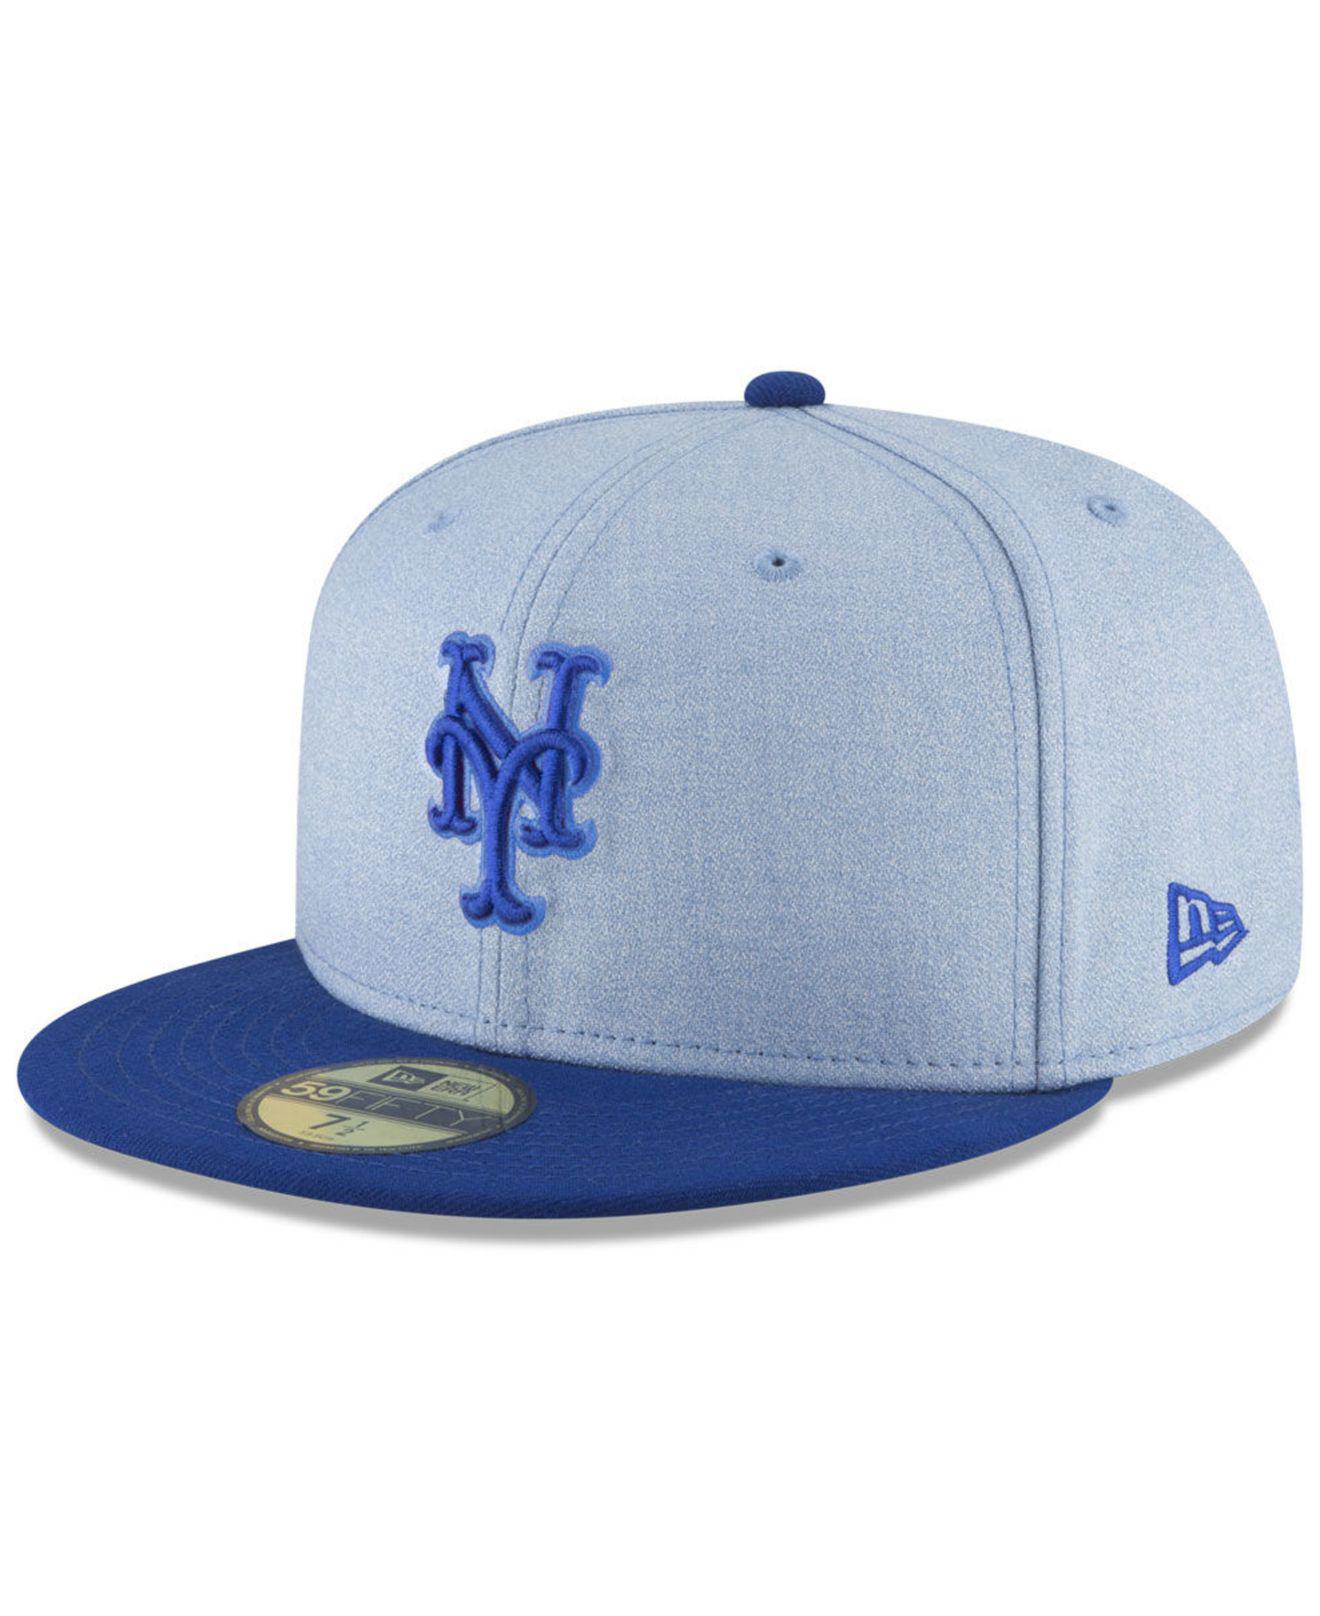 best wholesaler cheap prices low cost KTZ Synthetic New York Mets Father's Day 59fifty Fitted Cap 2018 ...